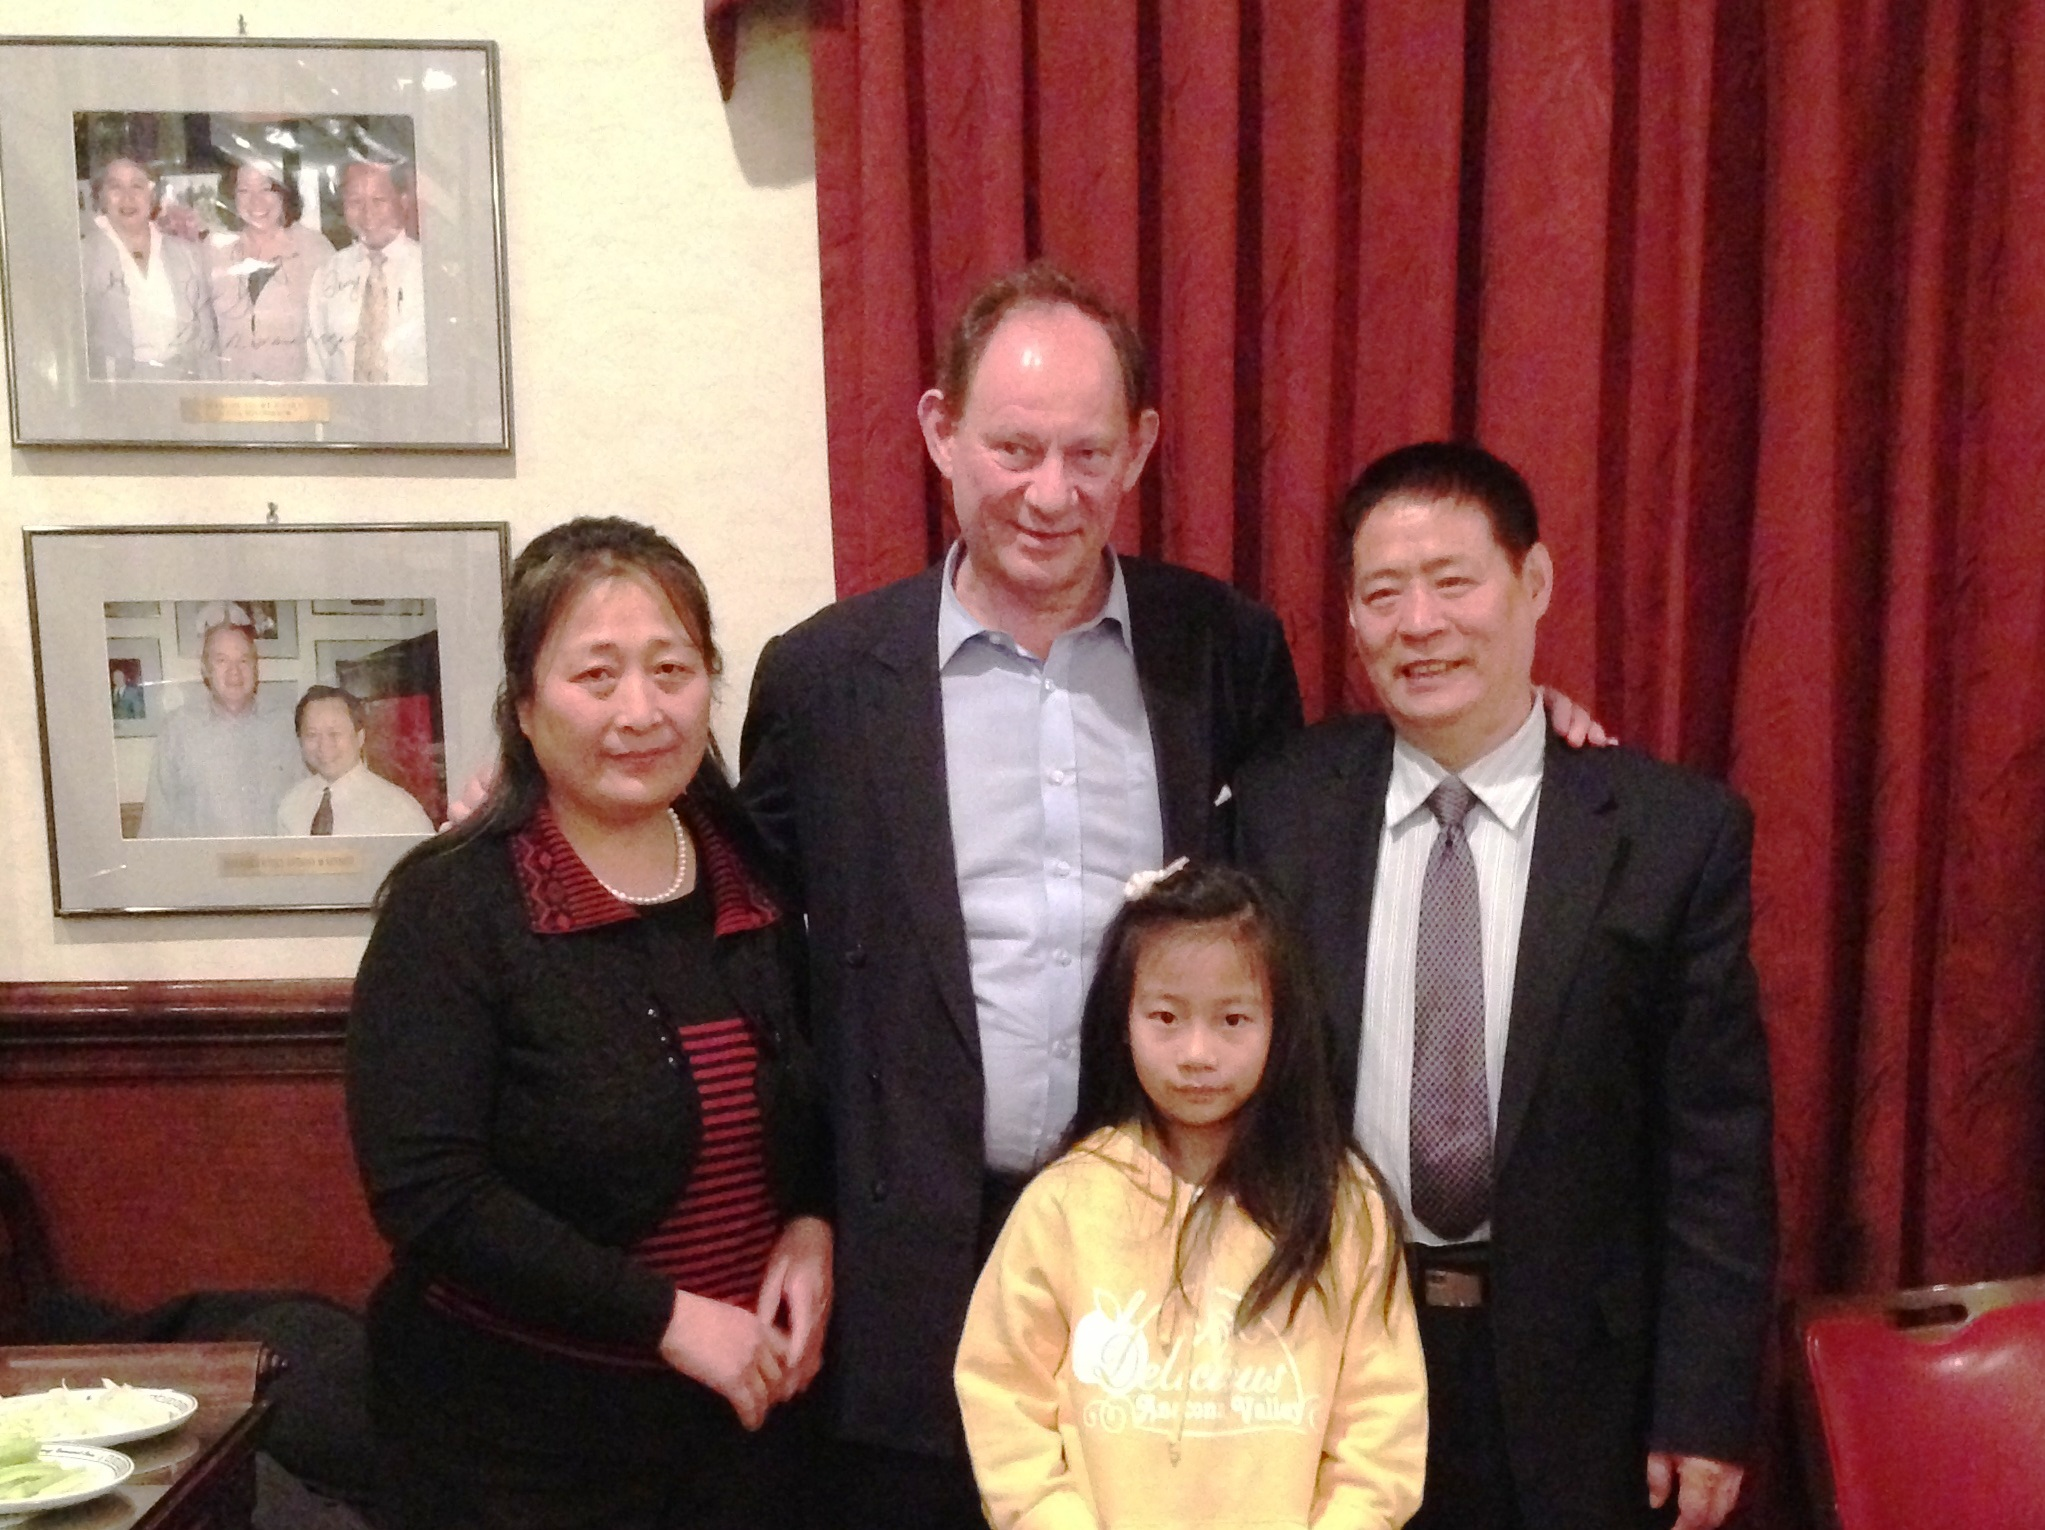 Mr. McMillan-Scott and Ms. Zhang Lianying and her family